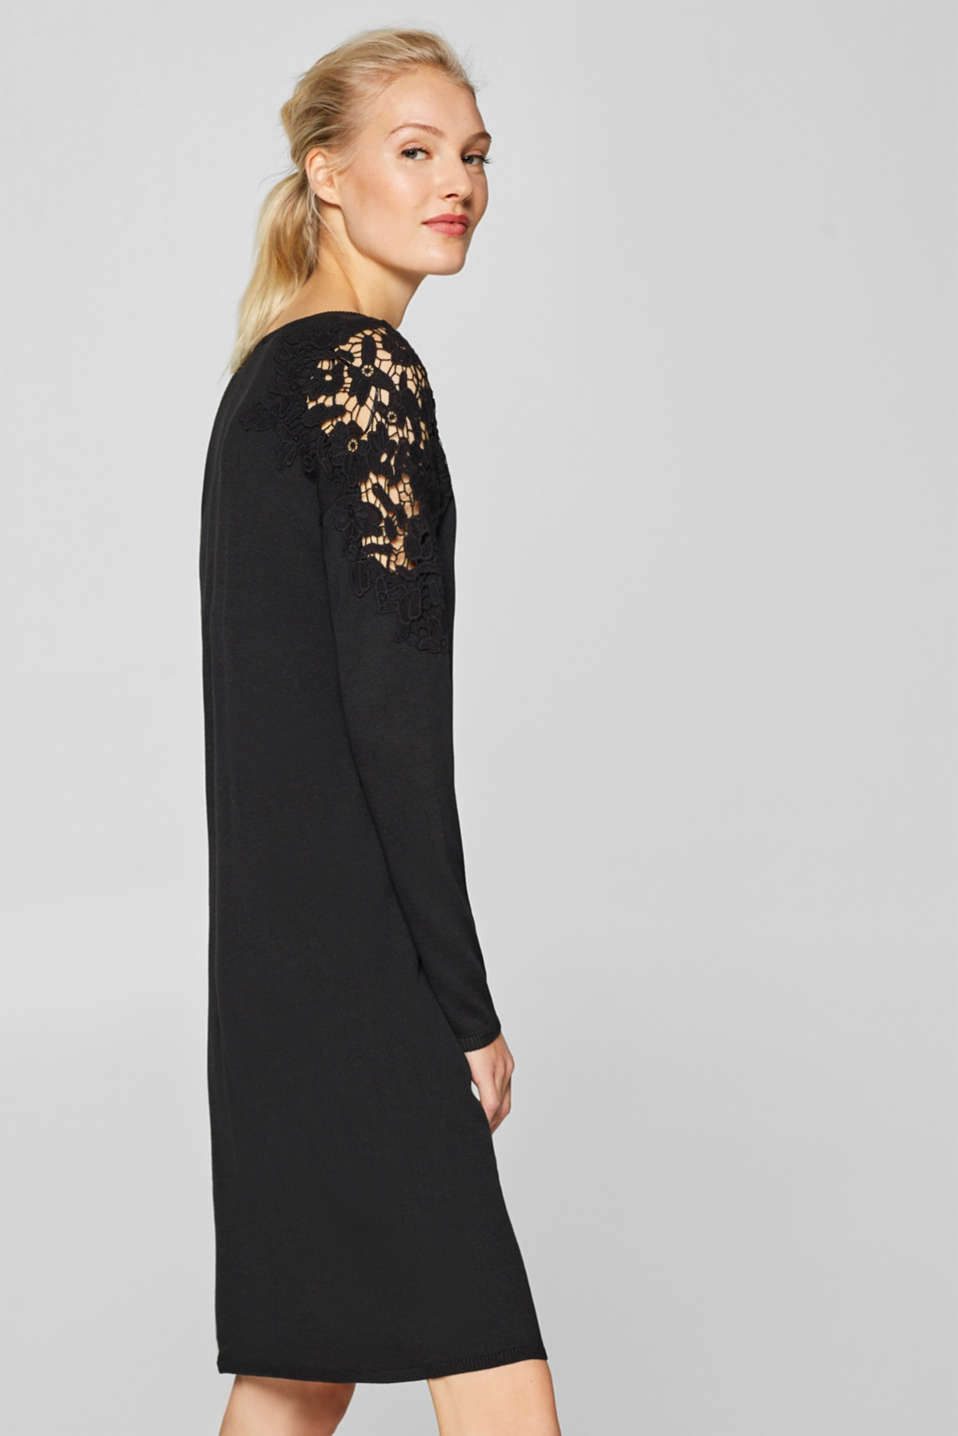 Esprit - Knitted dress with details in crocheted lace